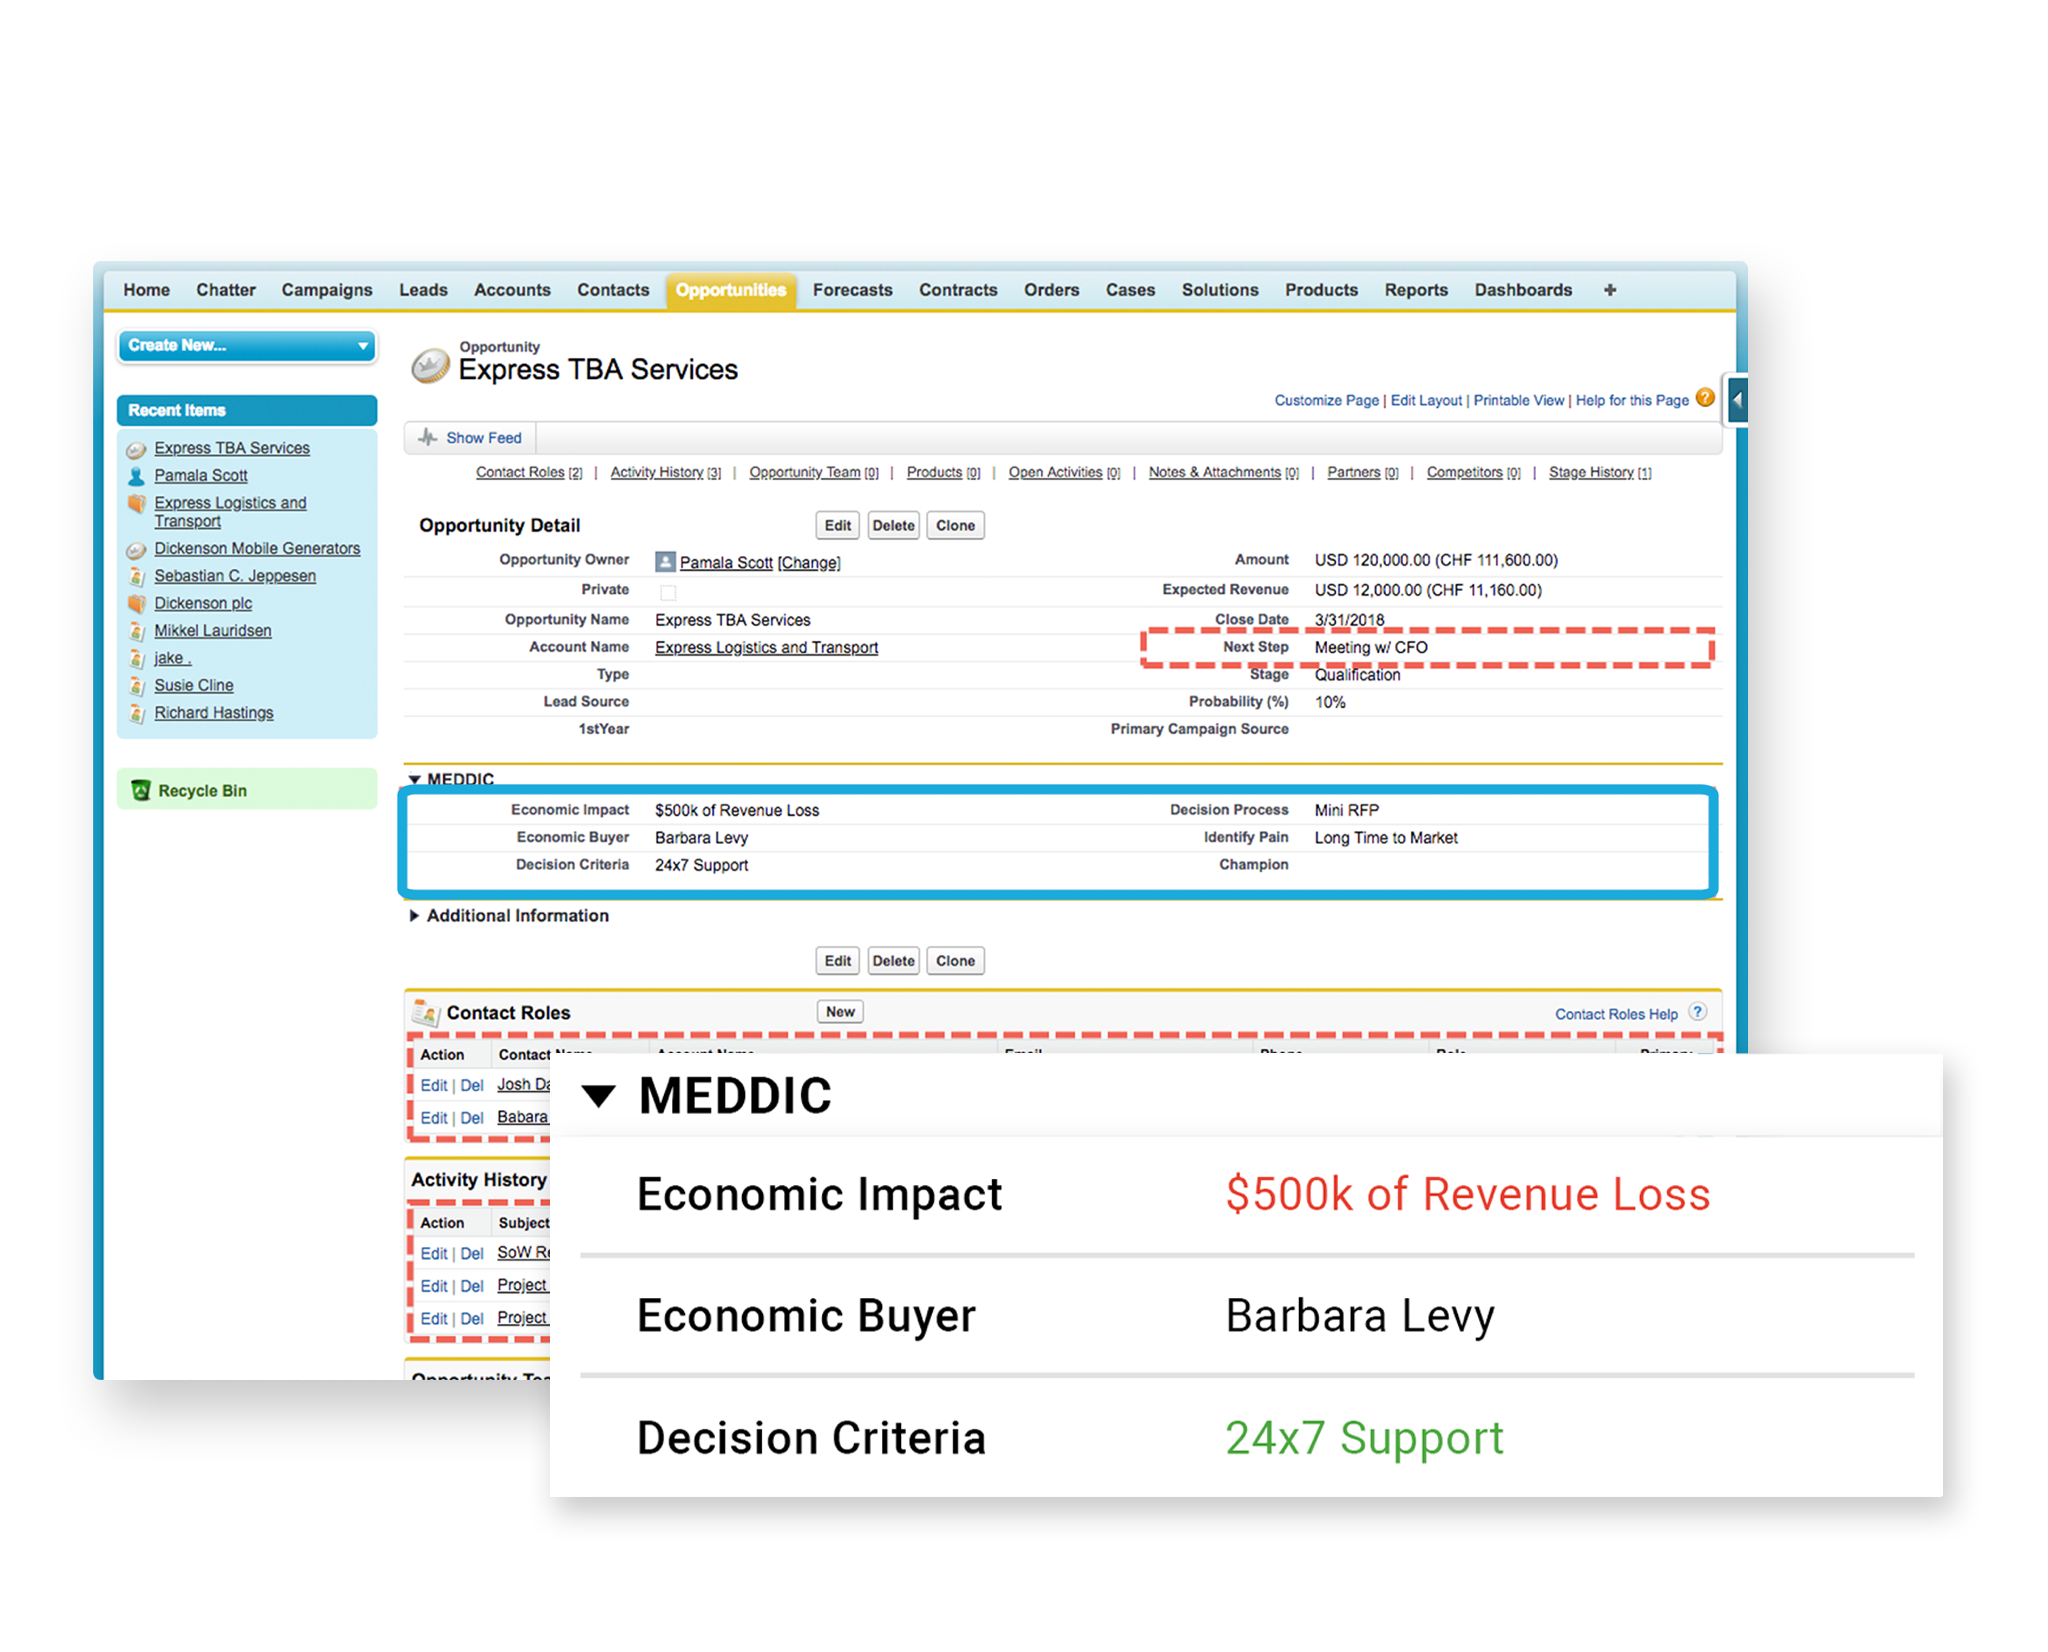 Automated MEDDIC or MEDDPIC Sales Methodologies